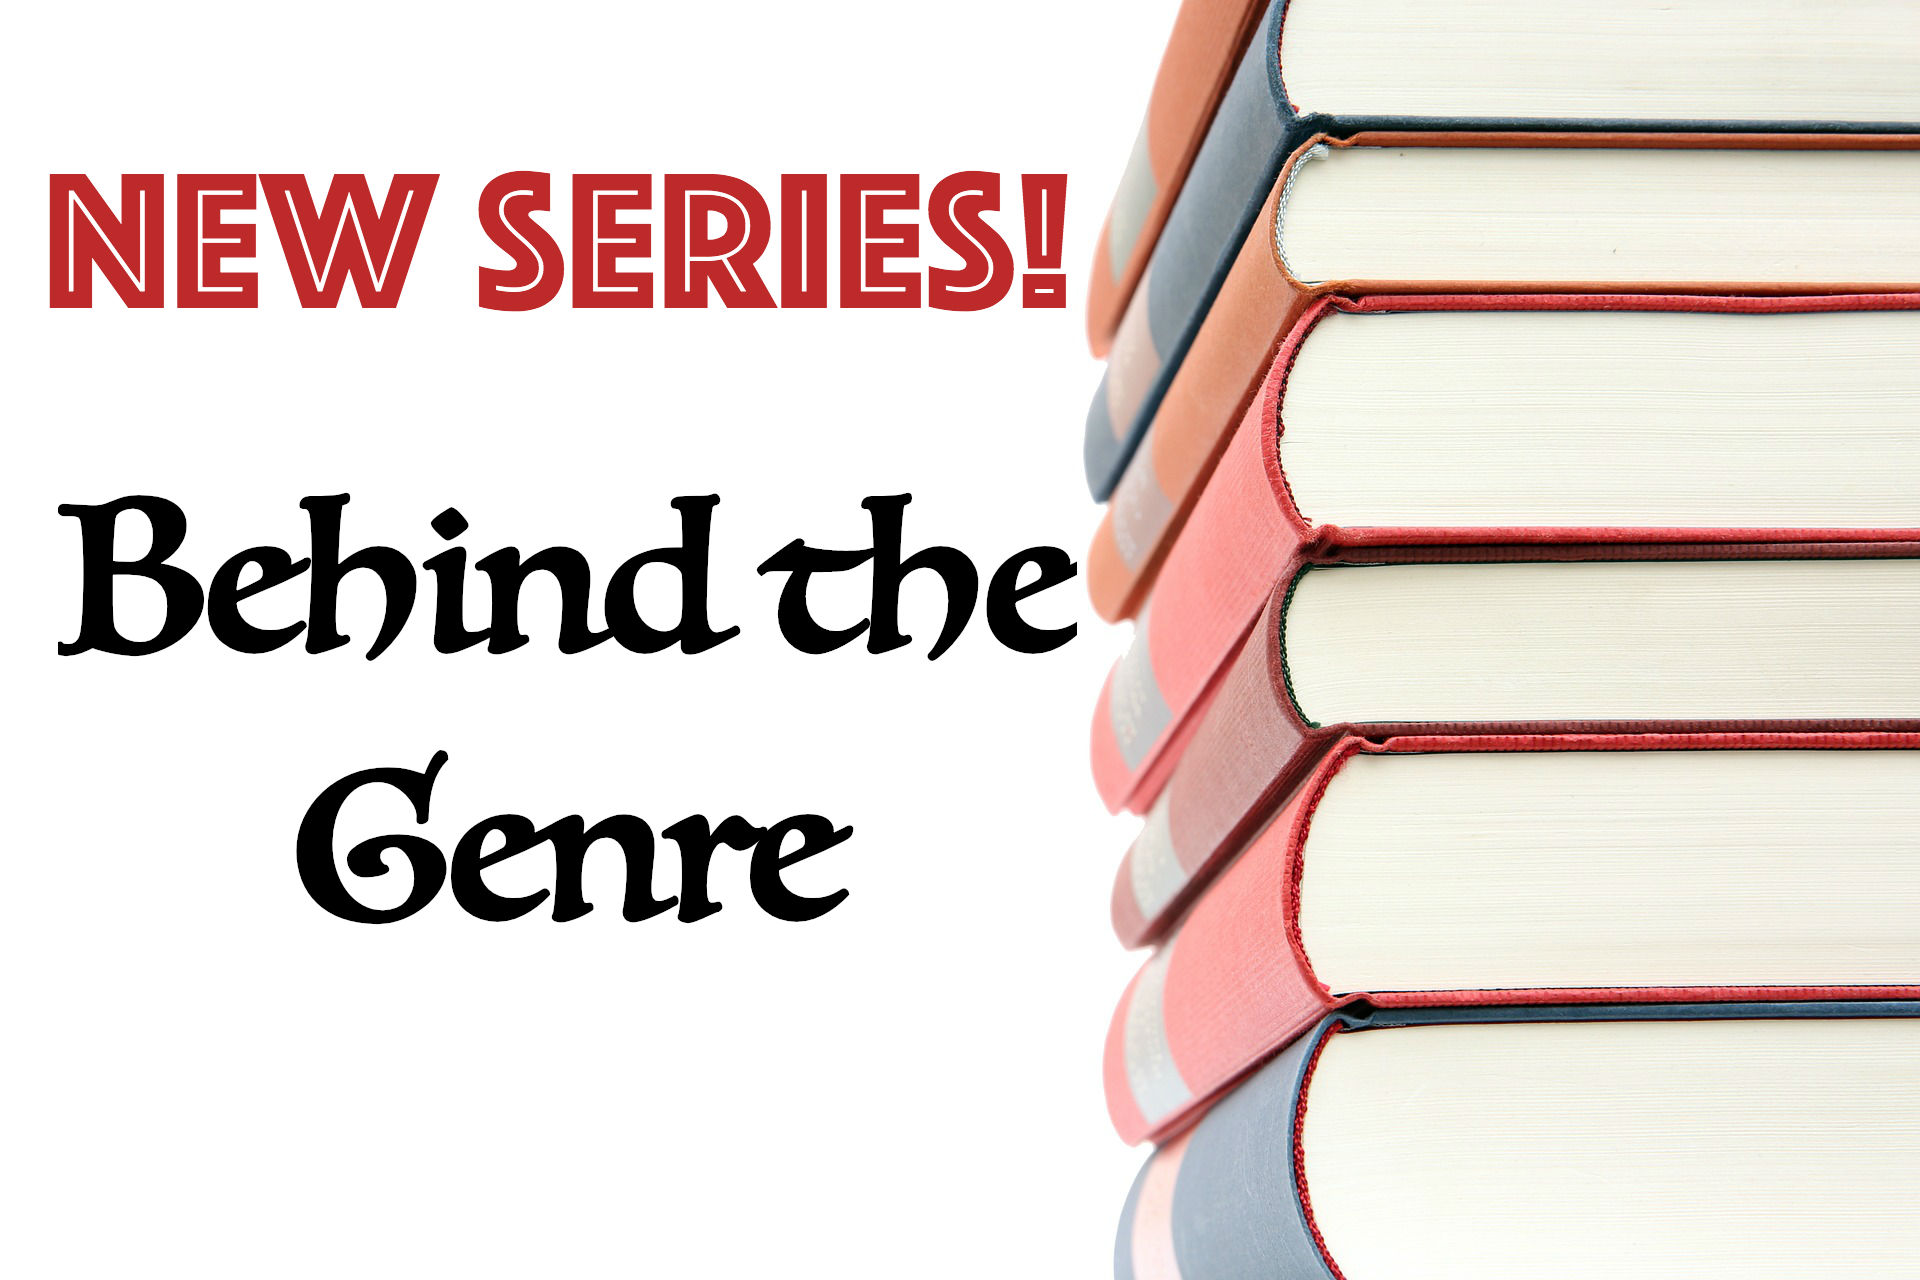 Behind the Genre: An Introduction | Sarah Biren